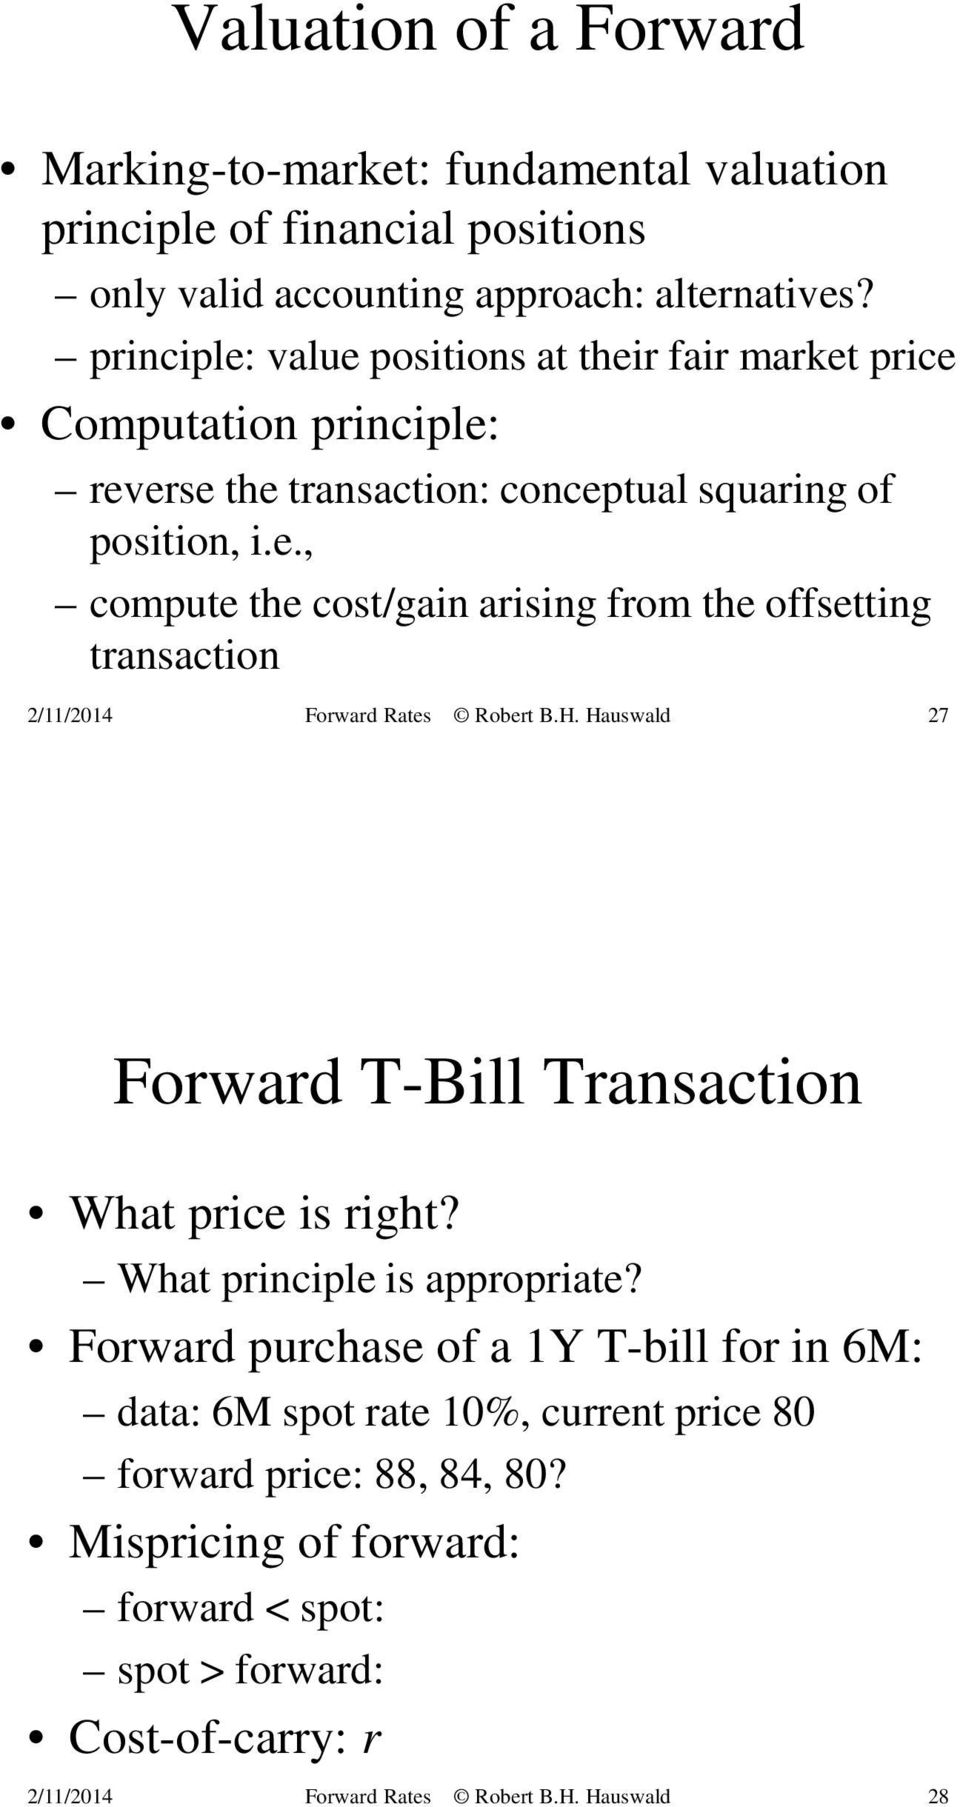 What principle is appropriate? Forward purchase of a 1Y T-bill for in 6M: data: 6M spot rate 10%, current price 80 forward price: 88, 84, 80?